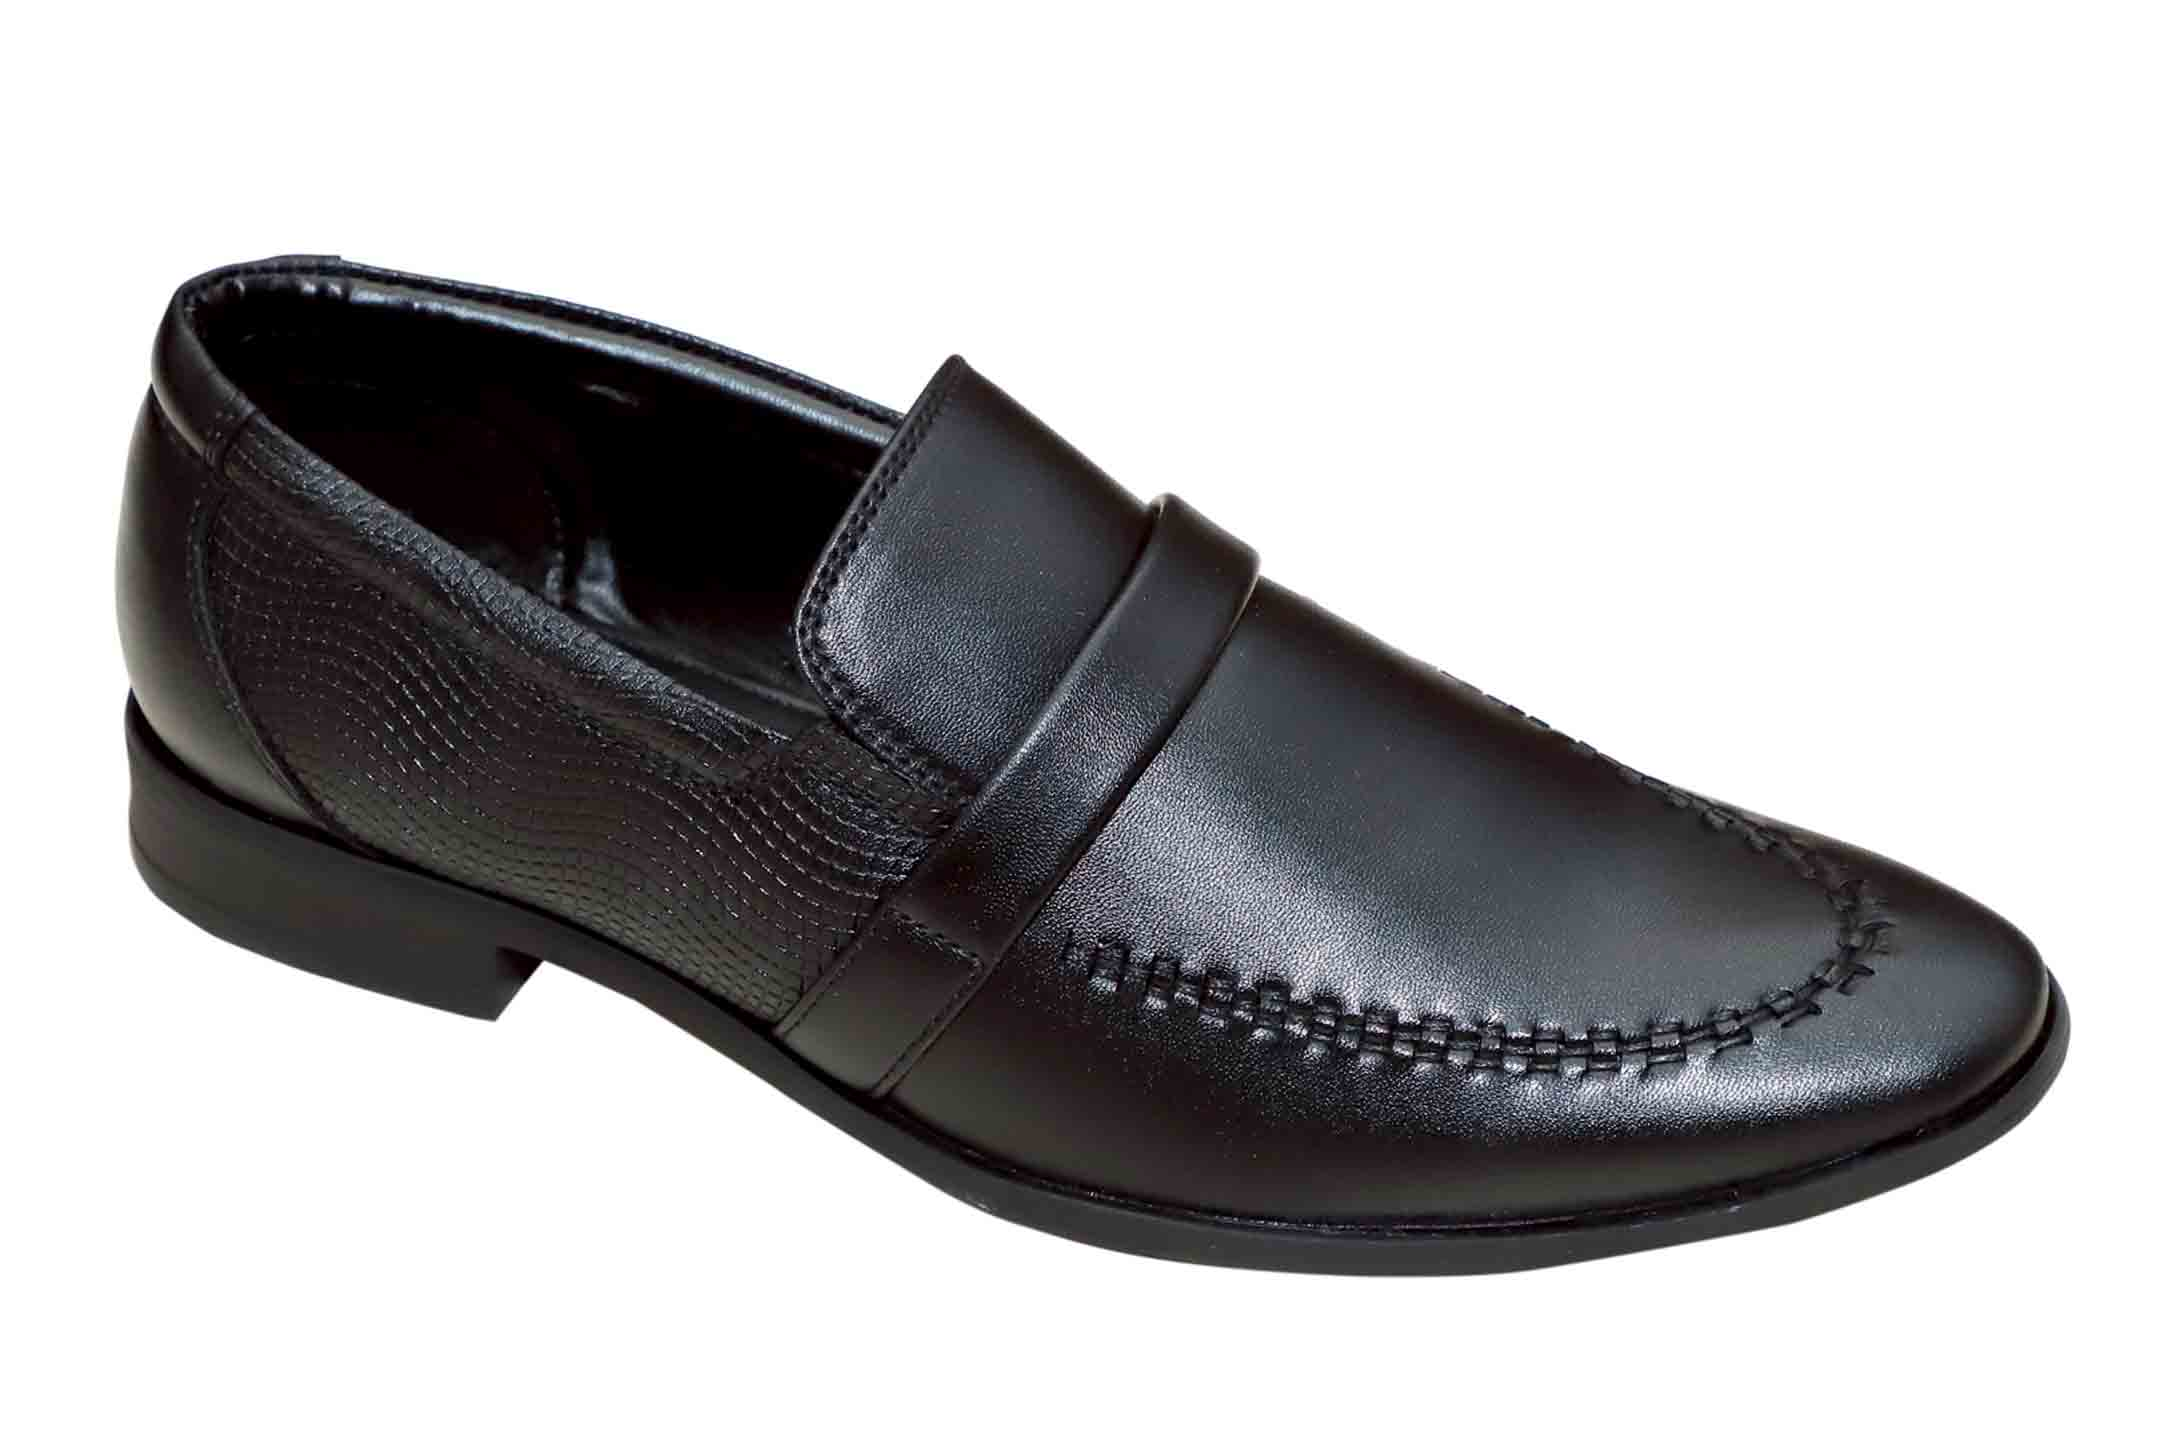 FORMAL037-BLACK MEN'S FORMAL SHOES